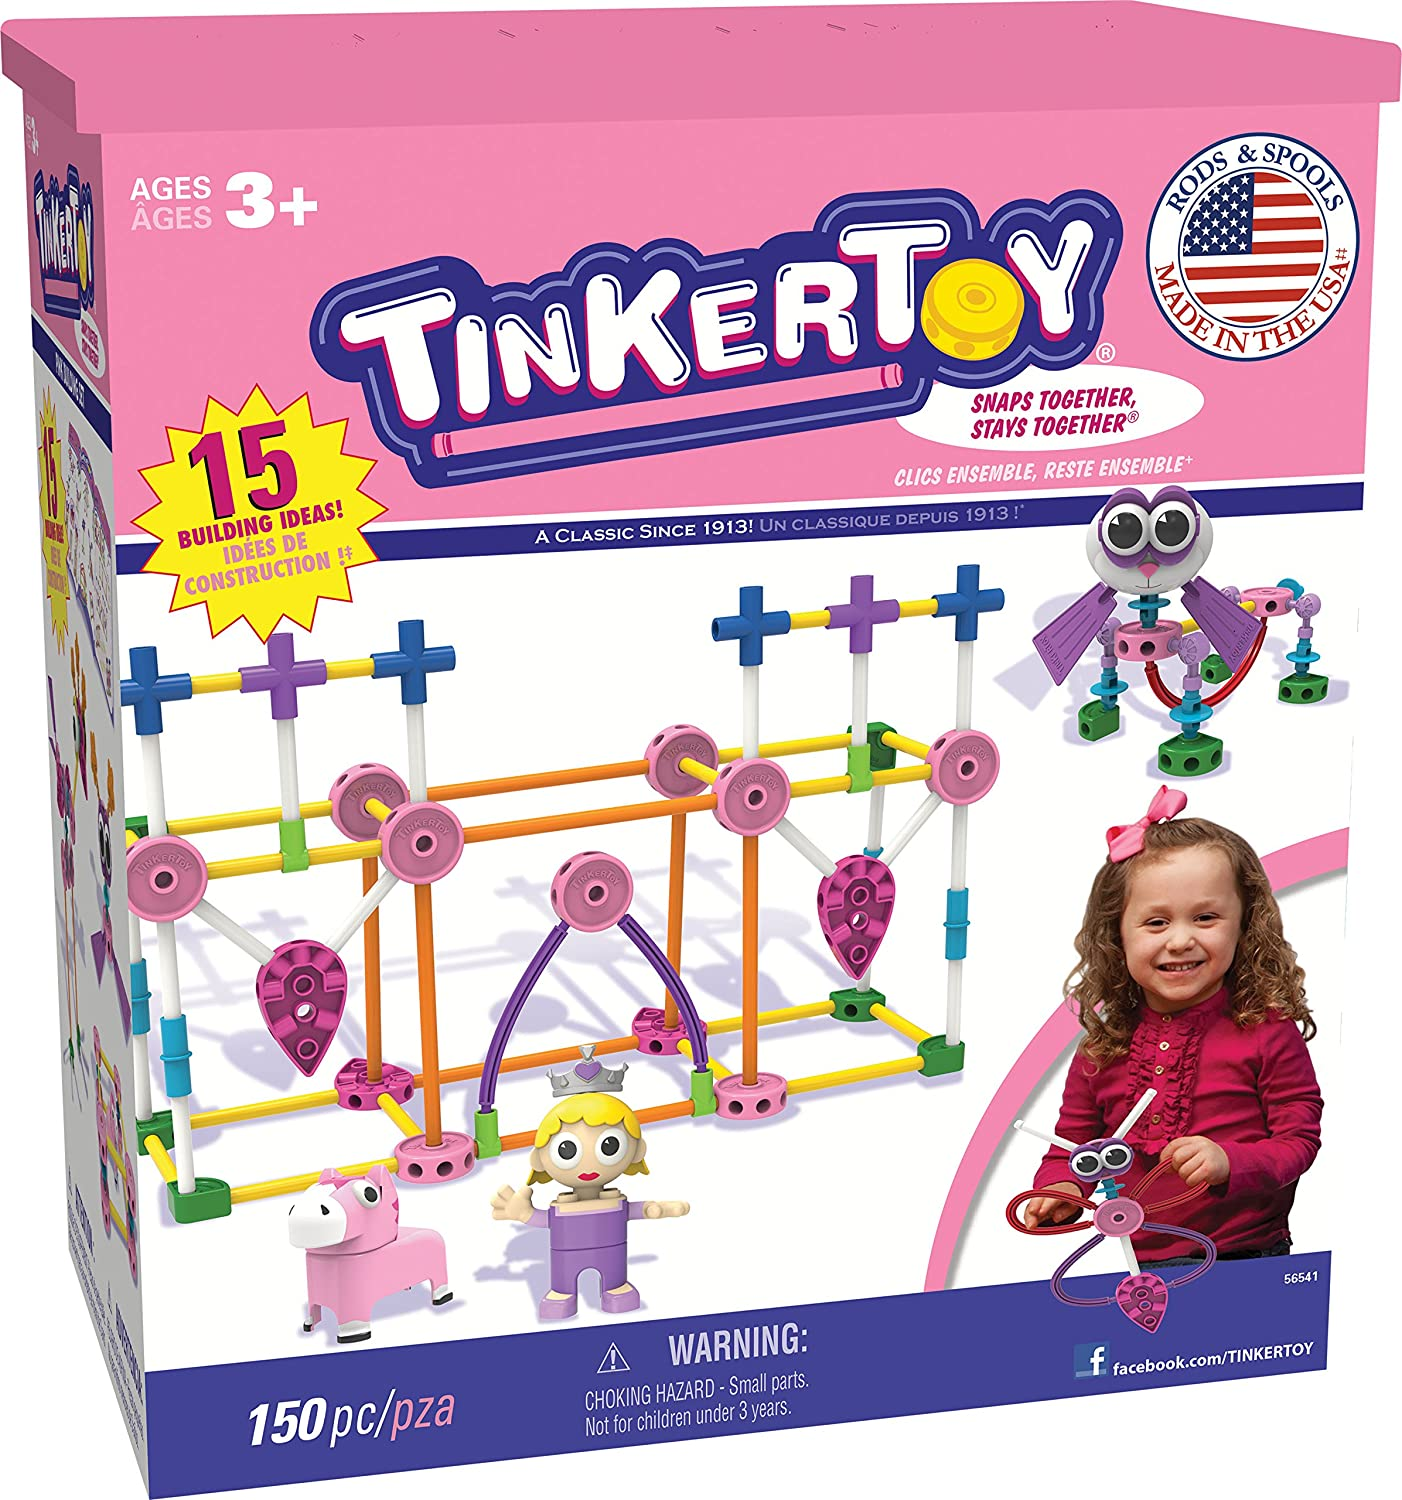 Amazon Tinkertoy Pink Building Set Toys & Games